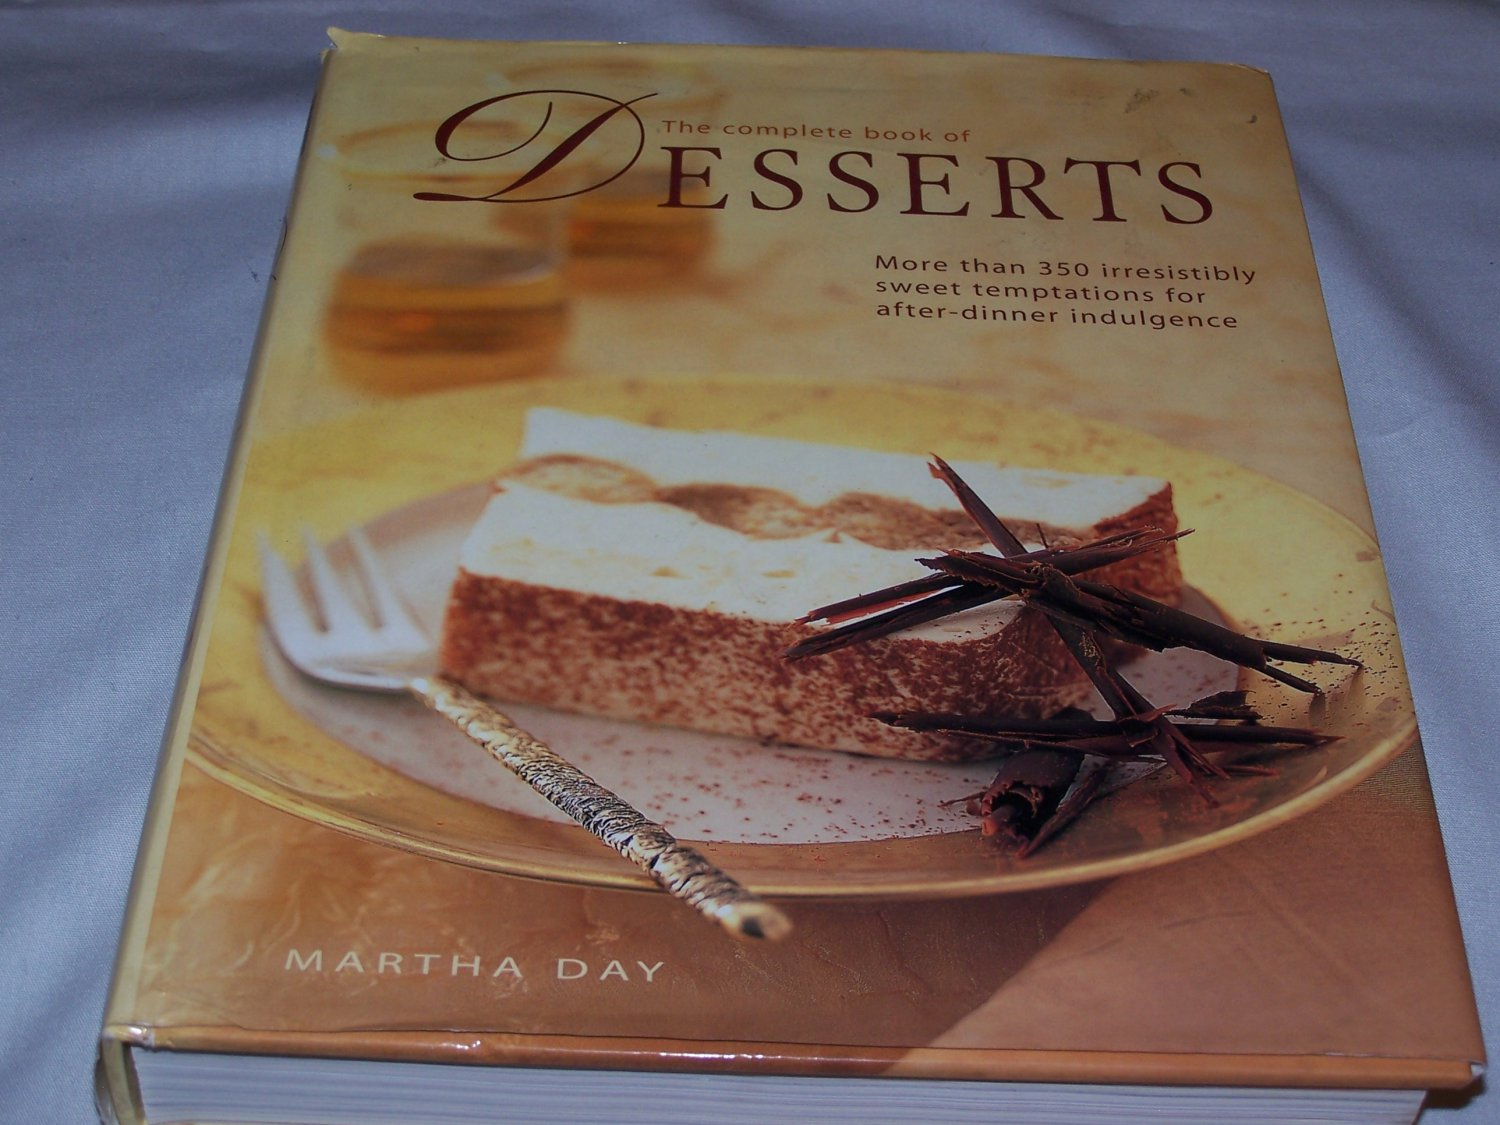 The Complete Book of Deserts (Hardcover)